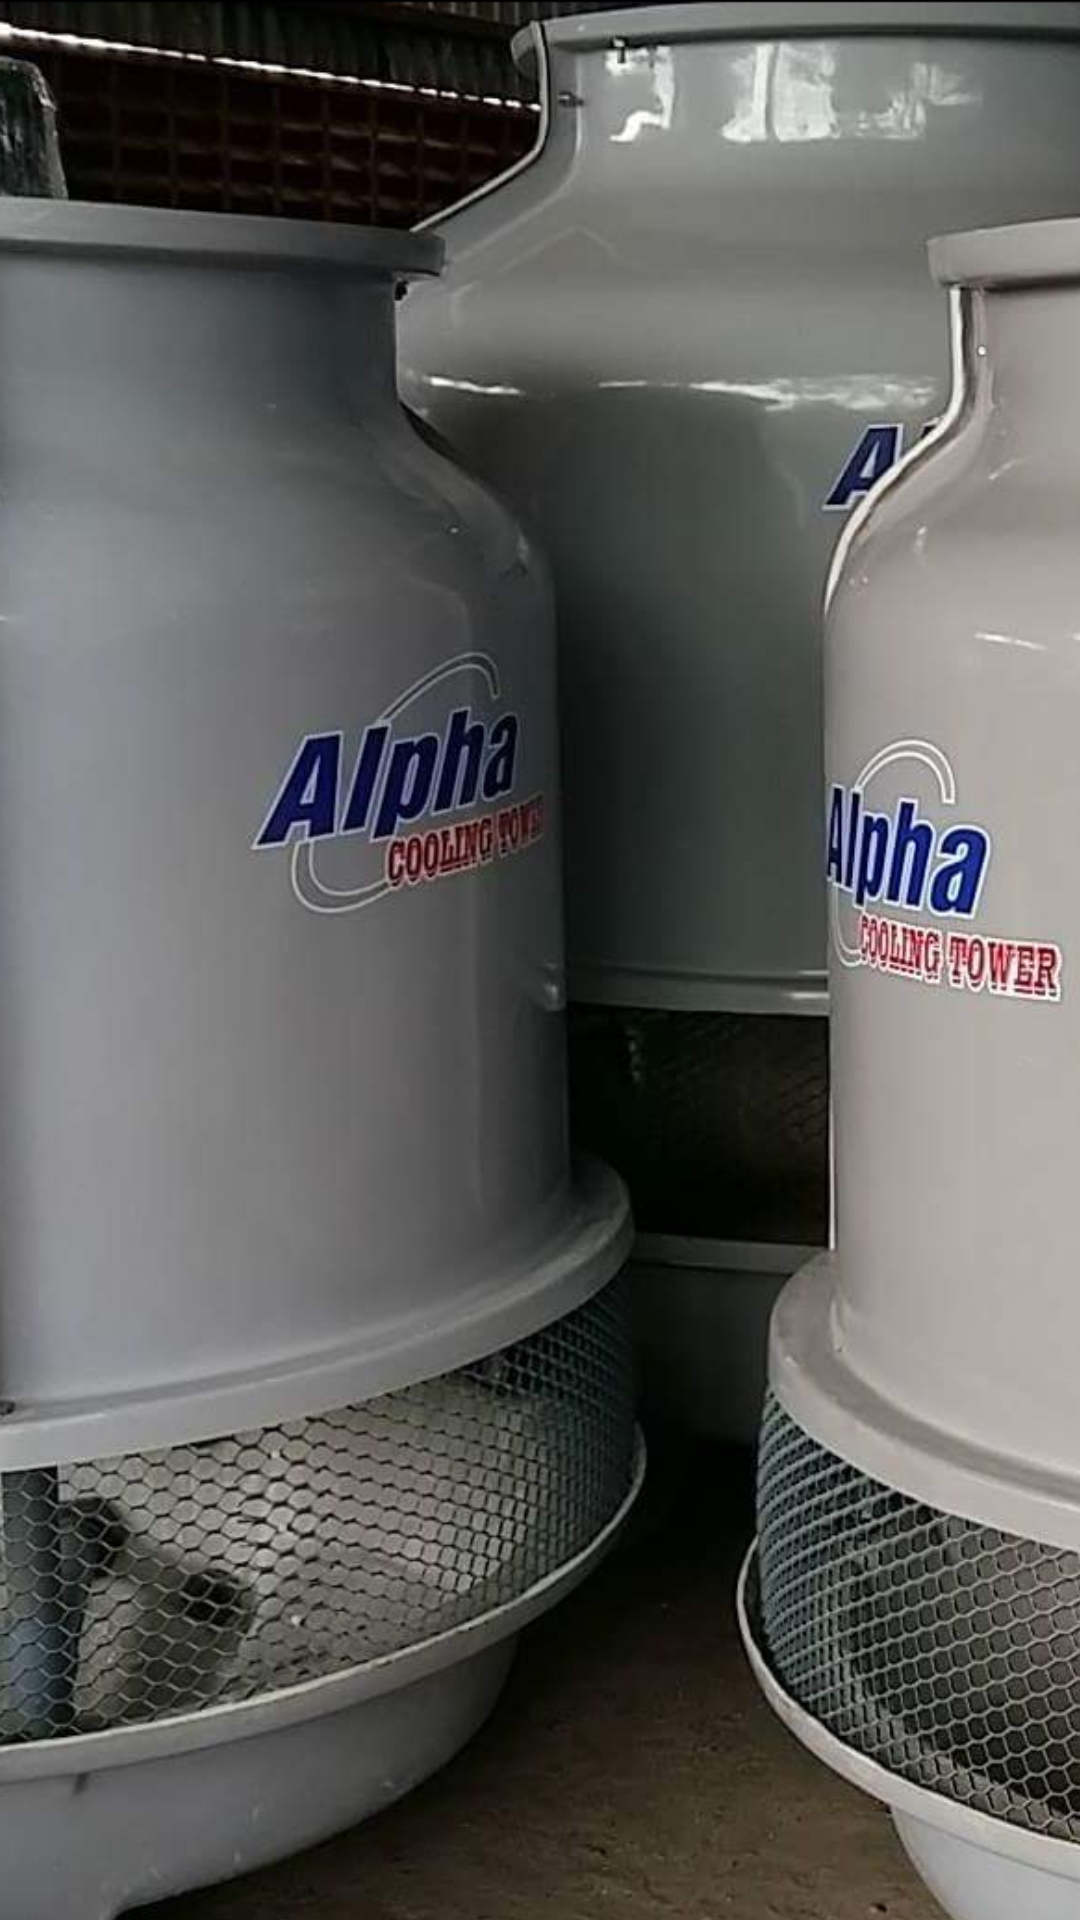 ALPHA VINA COOLING TOWER